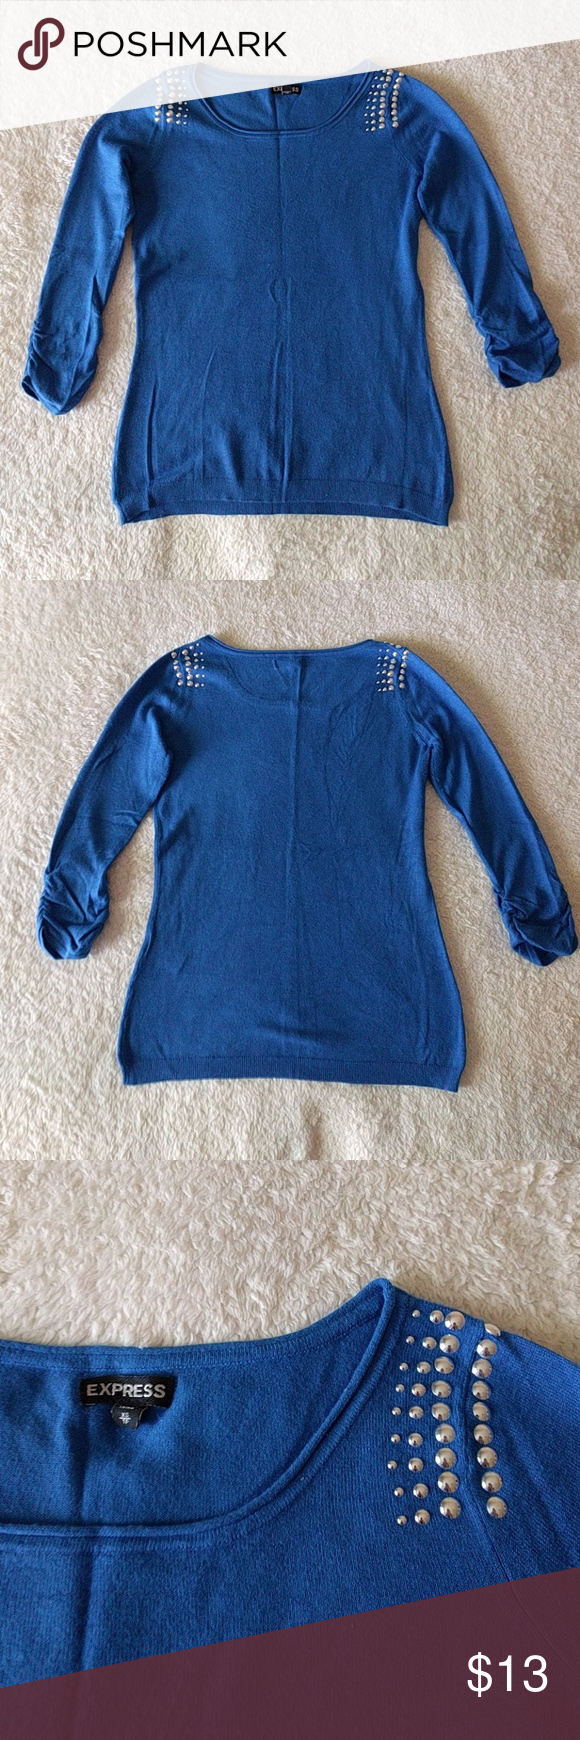 Express Blue Sweater with Embellished Shoulders Express Blue Sweater with Embellished Shoulders and Ruched Sleeves. Size extra small. Used with some light piling. Express Sweaters Crew & Scoop Necks